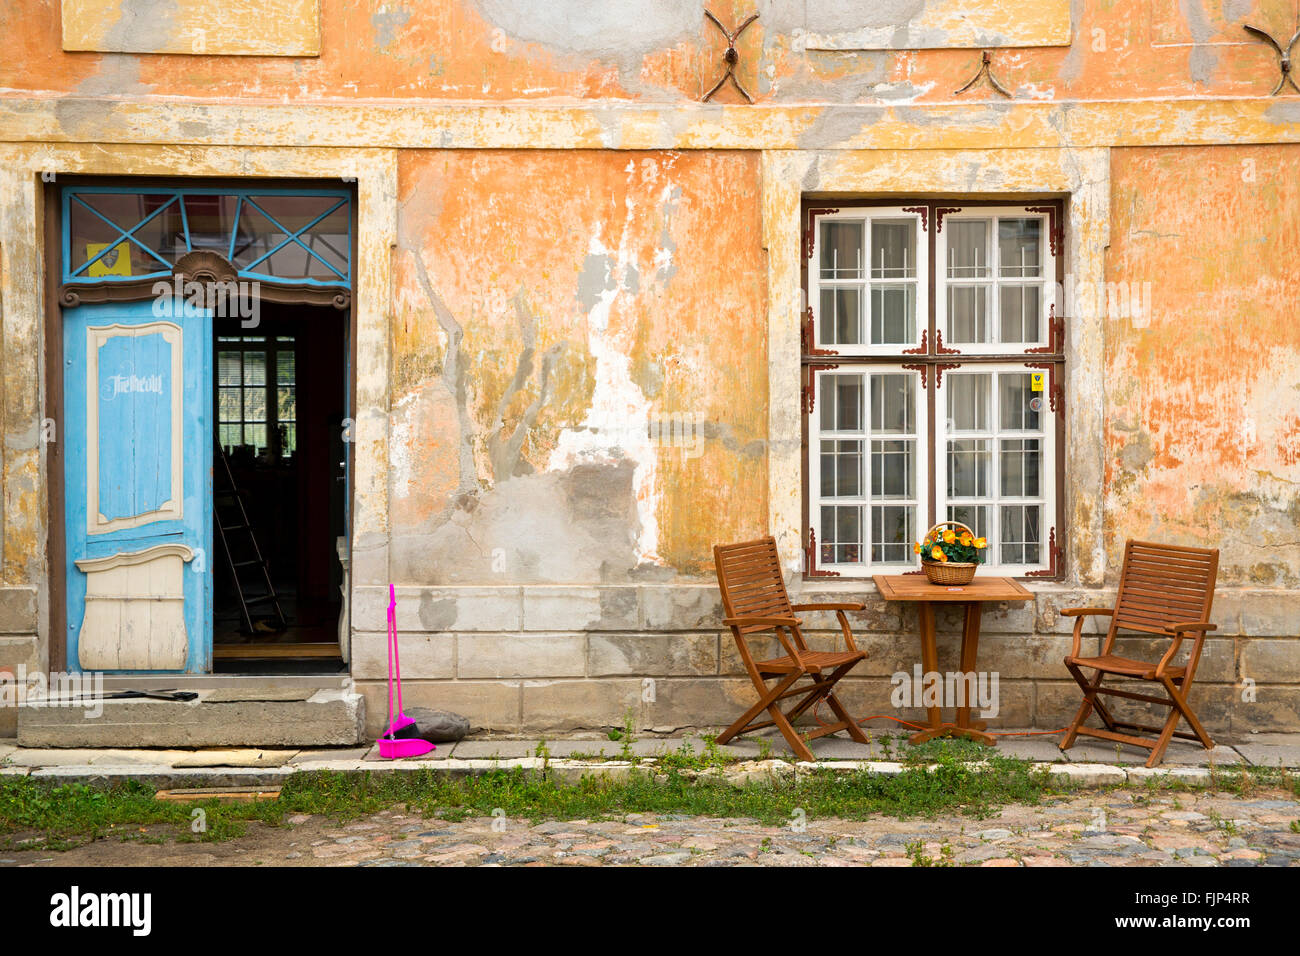 geography / travel, Estonia, Tallinn, old town, alley, Additional-Rights-Clearance-Info-Not-Available - Stock Image